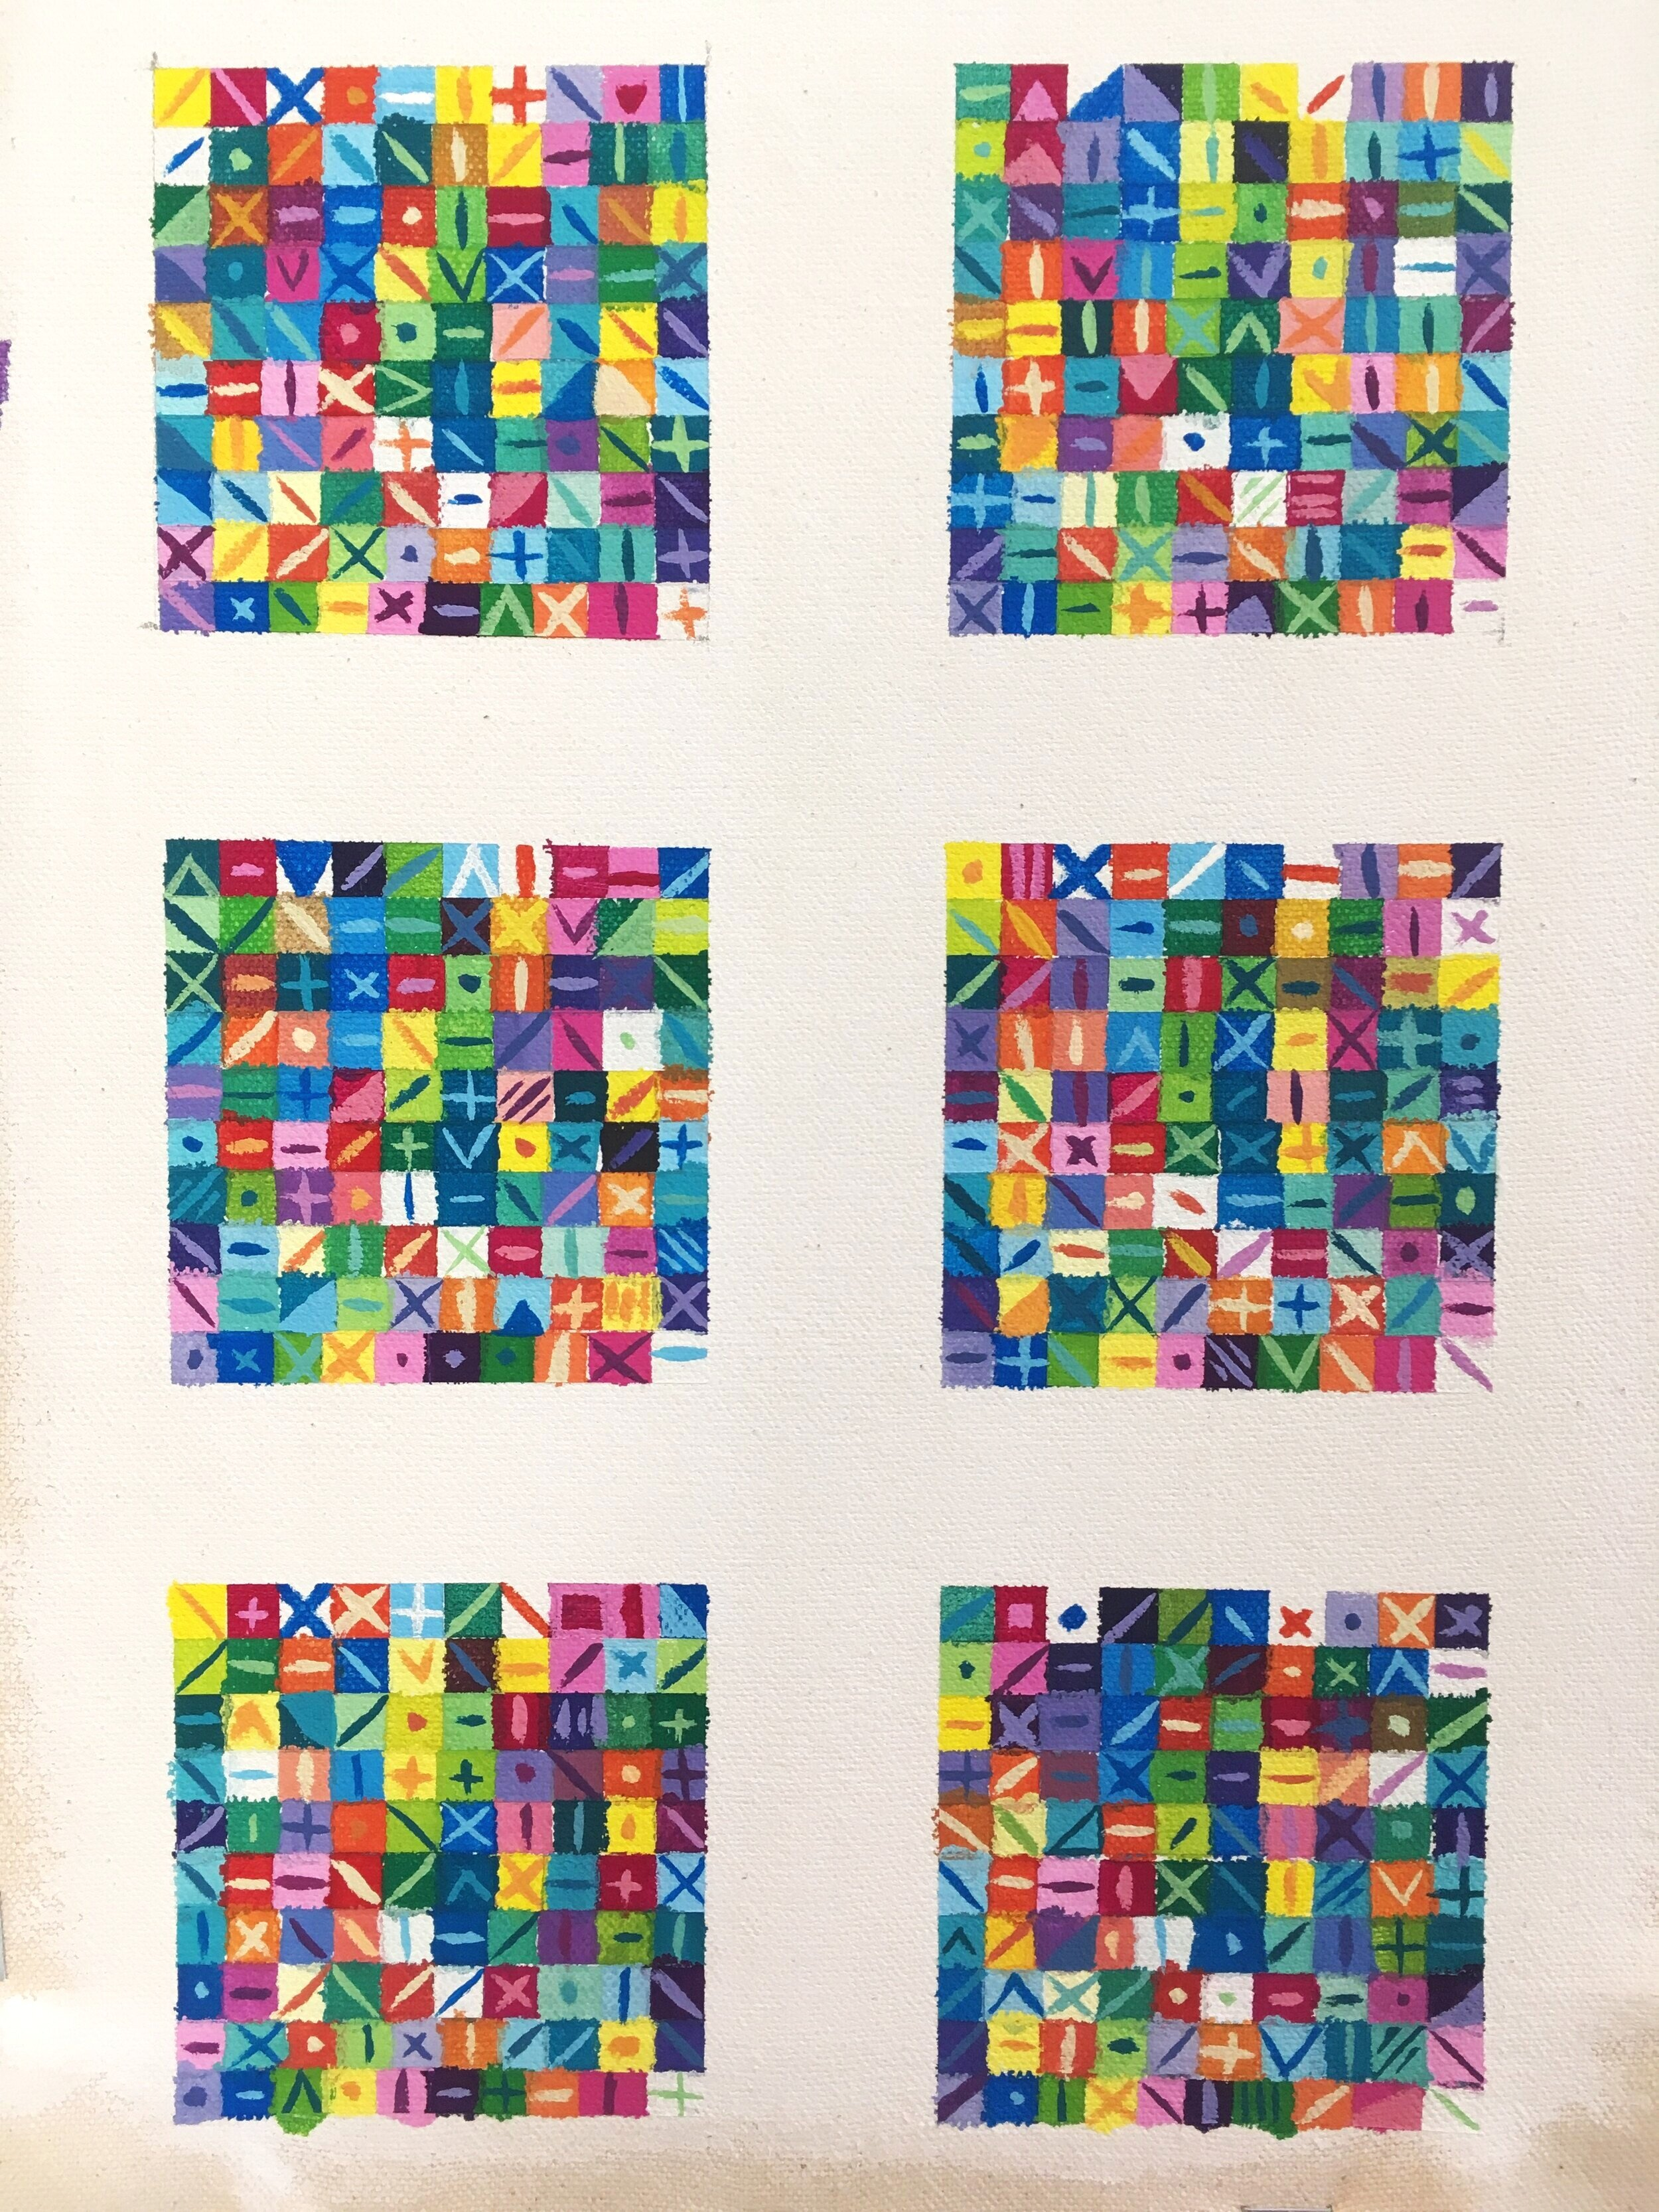 Untitled , 2019, gouache, canvas, 2.5 x 2.5 inches (each square)